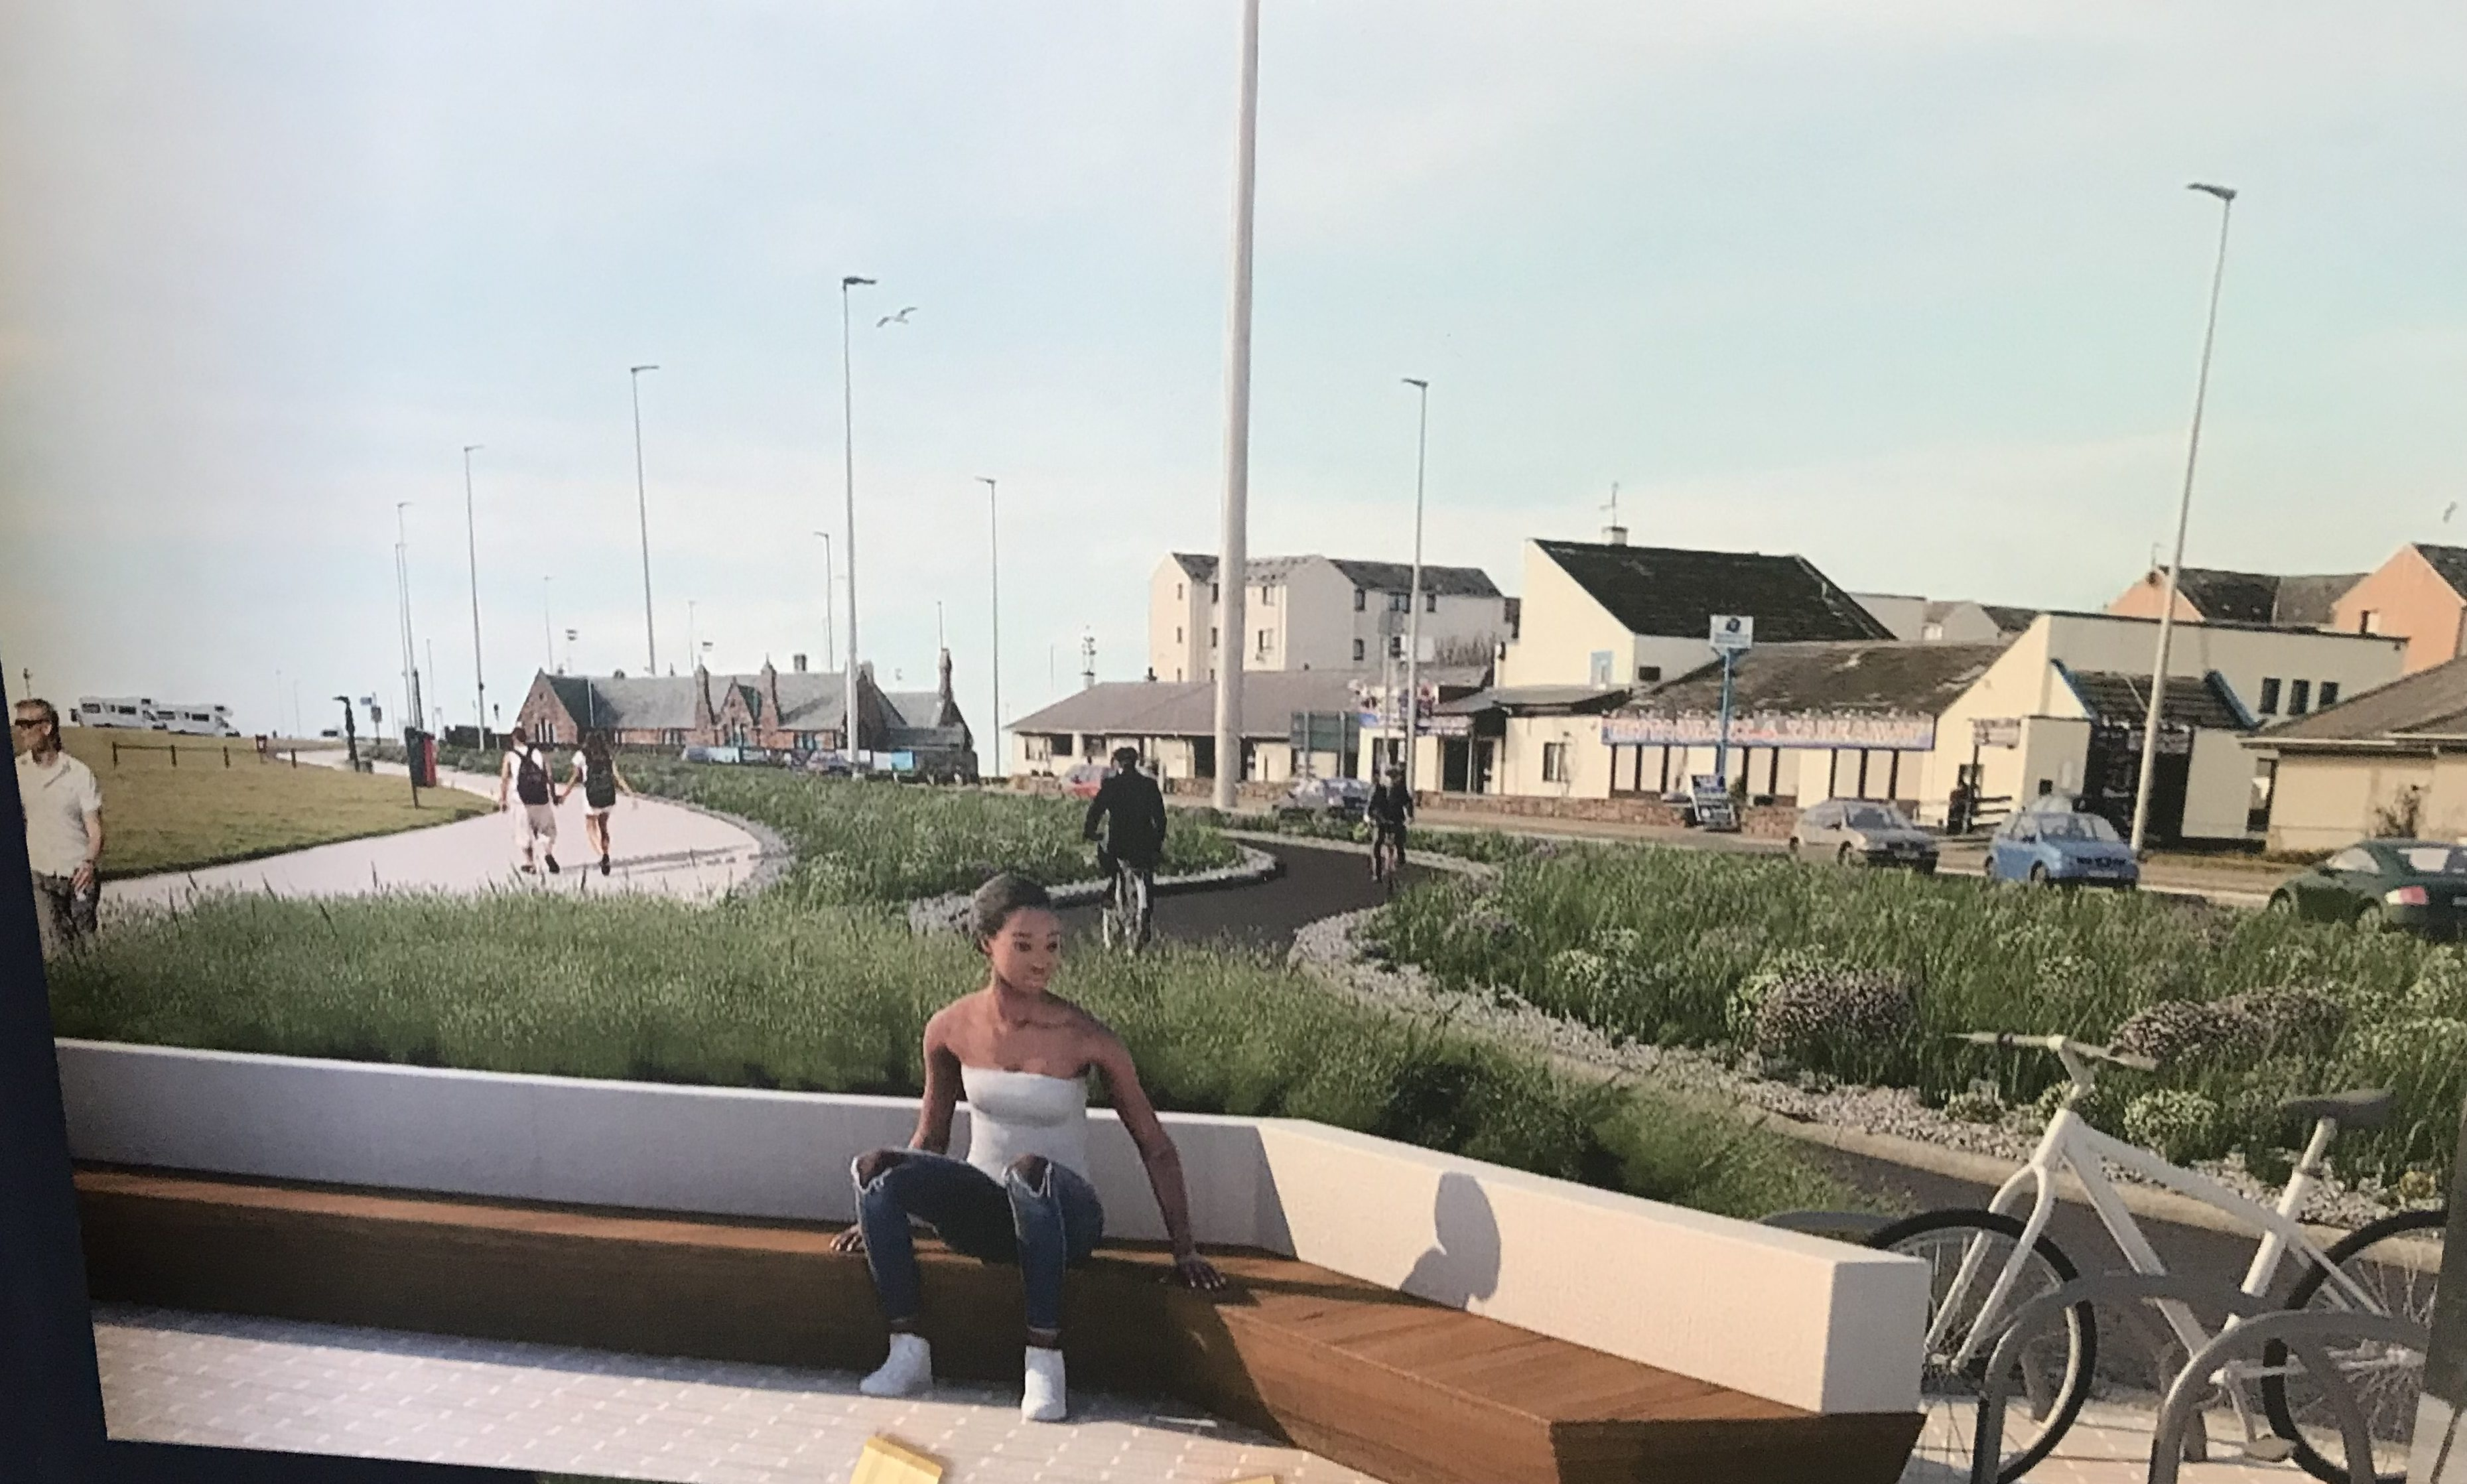 A display shows how Arbroath could be transformed